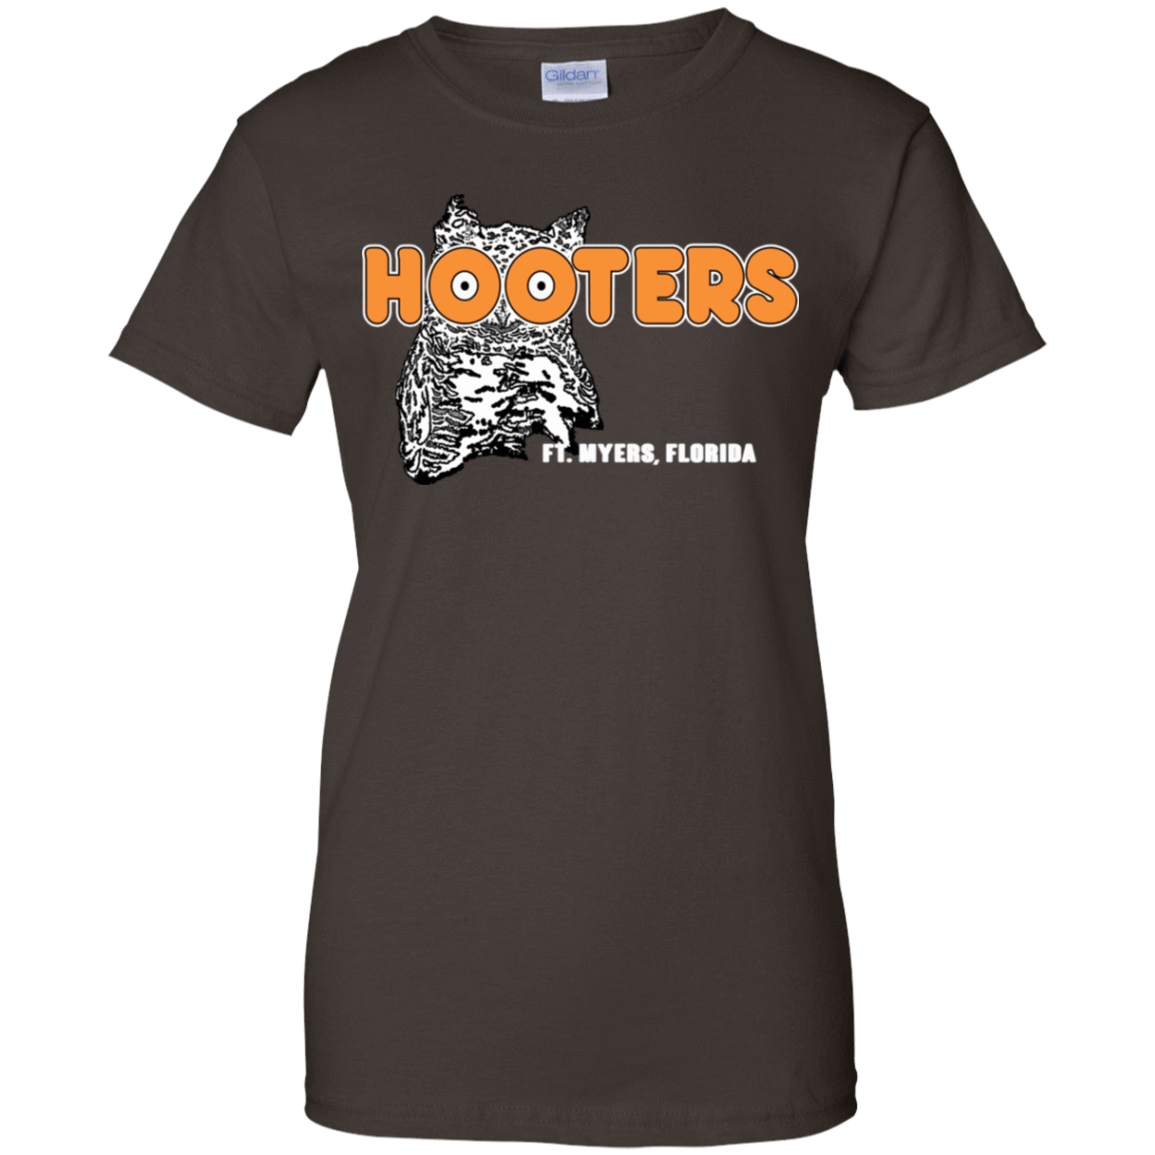 Hooters T-Shirts Fort Myers, Florida 939-9251-73155977-44702 - Tee Ript